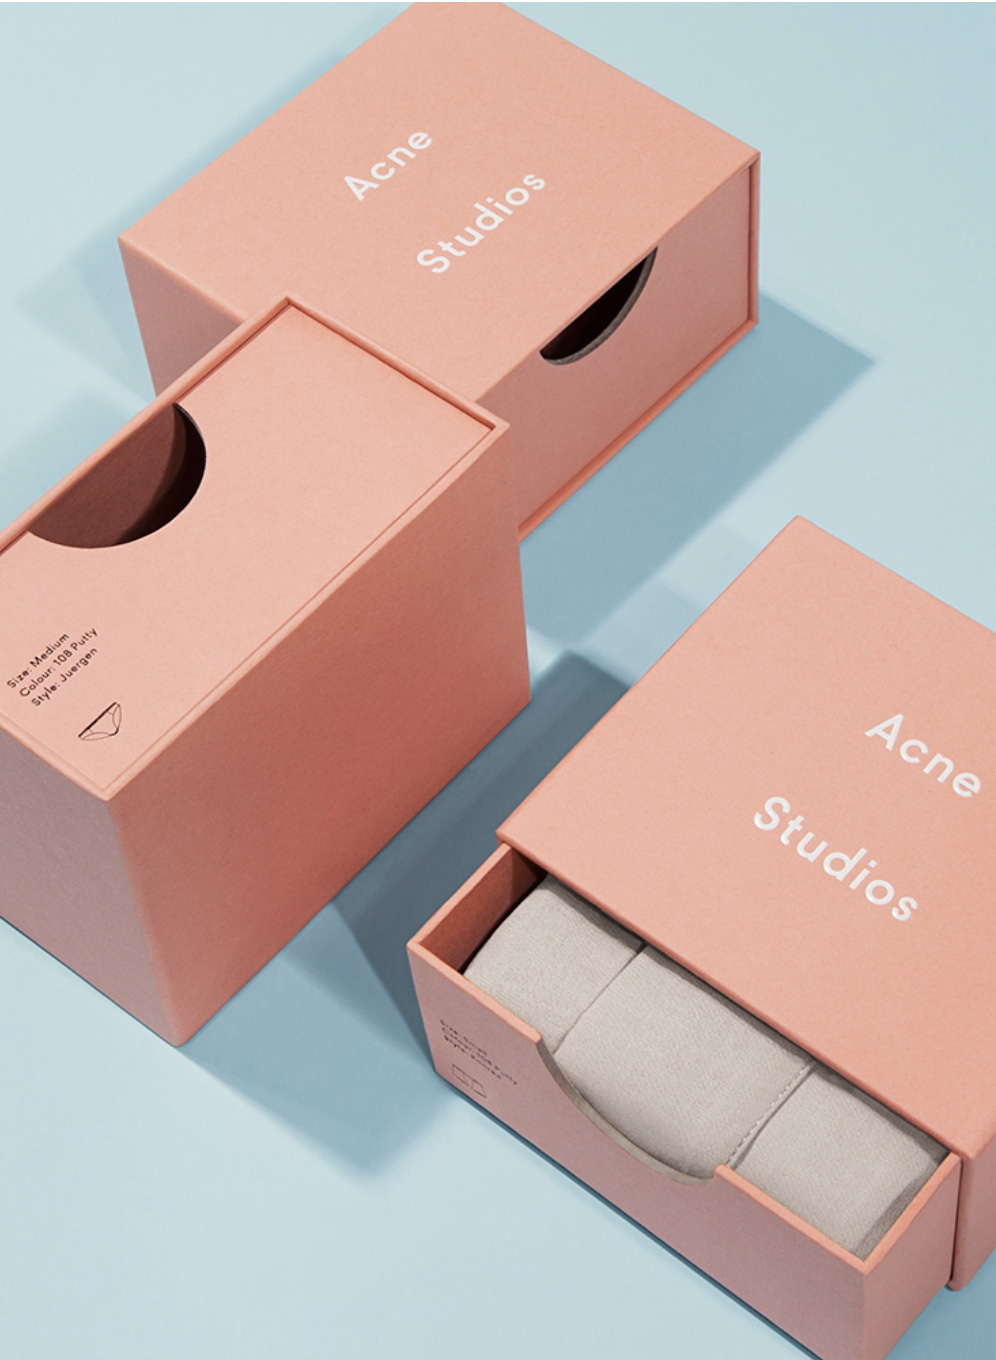 Study of Fashion House Logos, Acne Studios | Yellowtrace